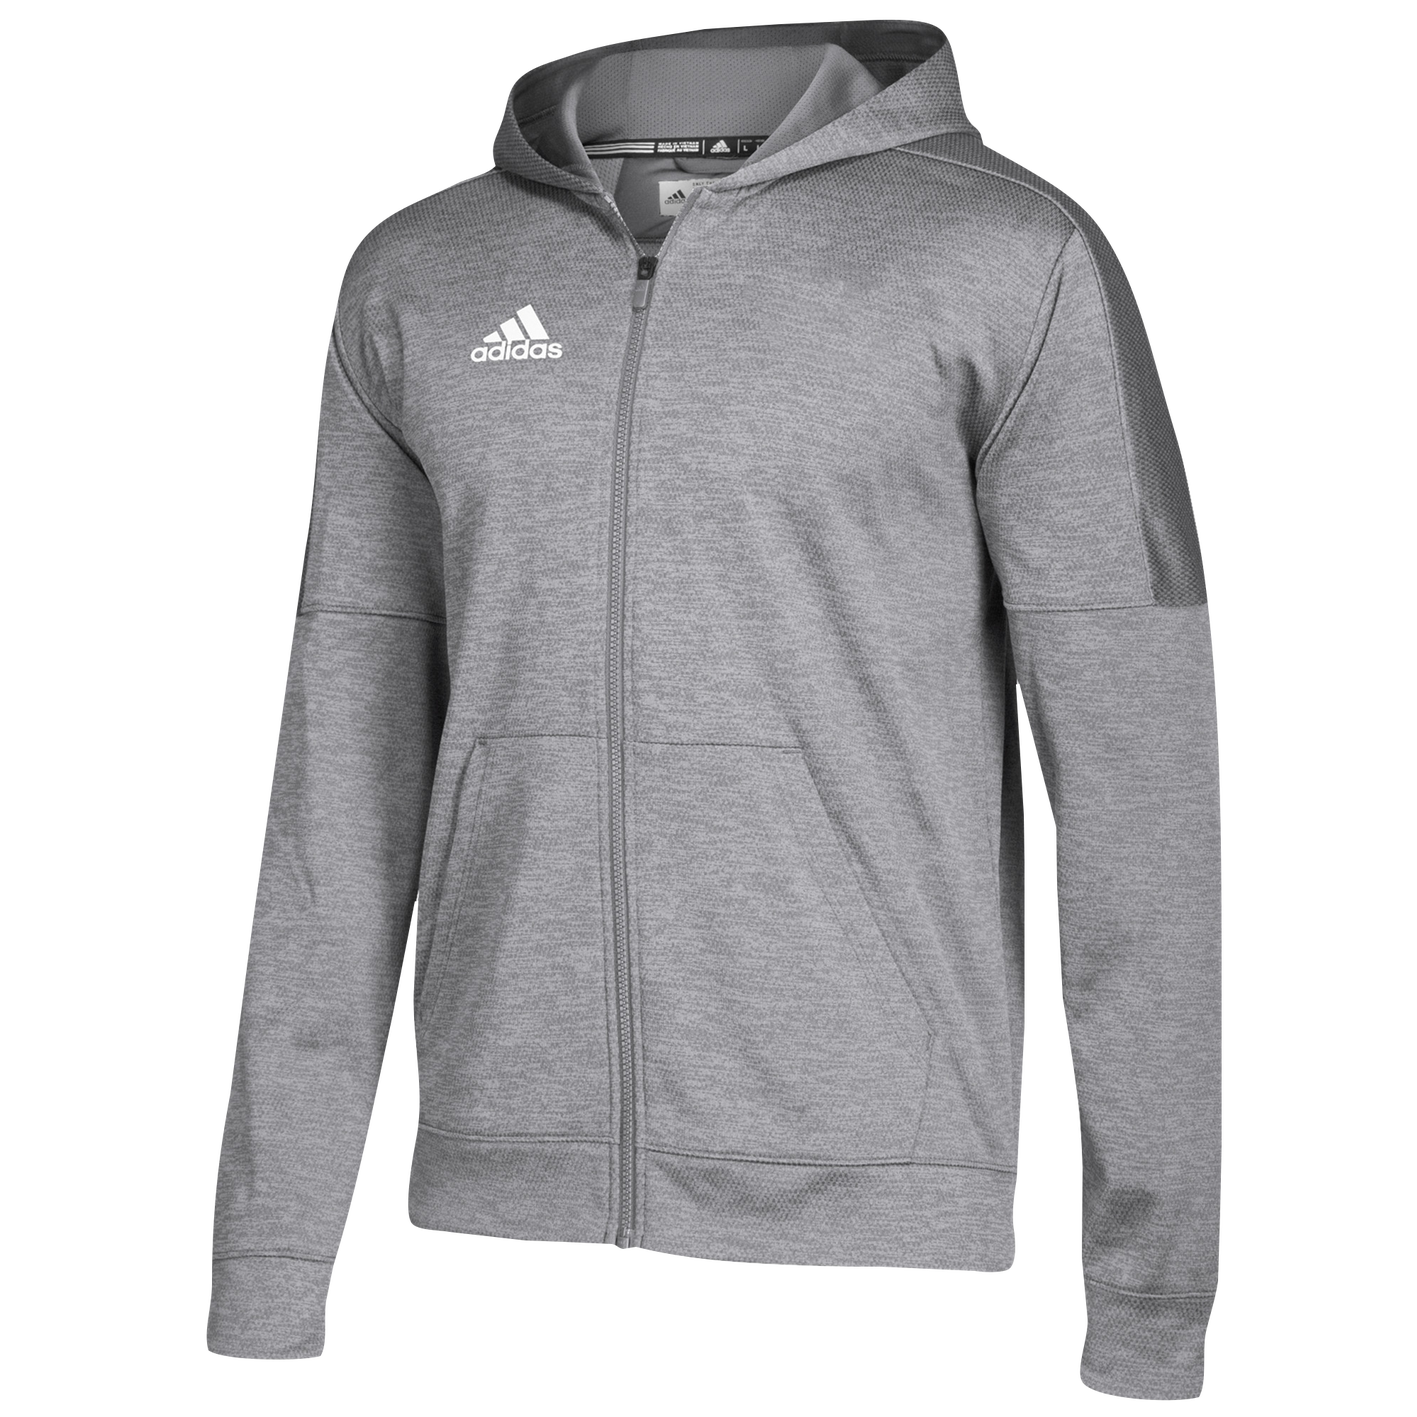 9926127e2499 adidas Team Issue Fleece Full Zip Hoodie - Men s - For All Sports ...